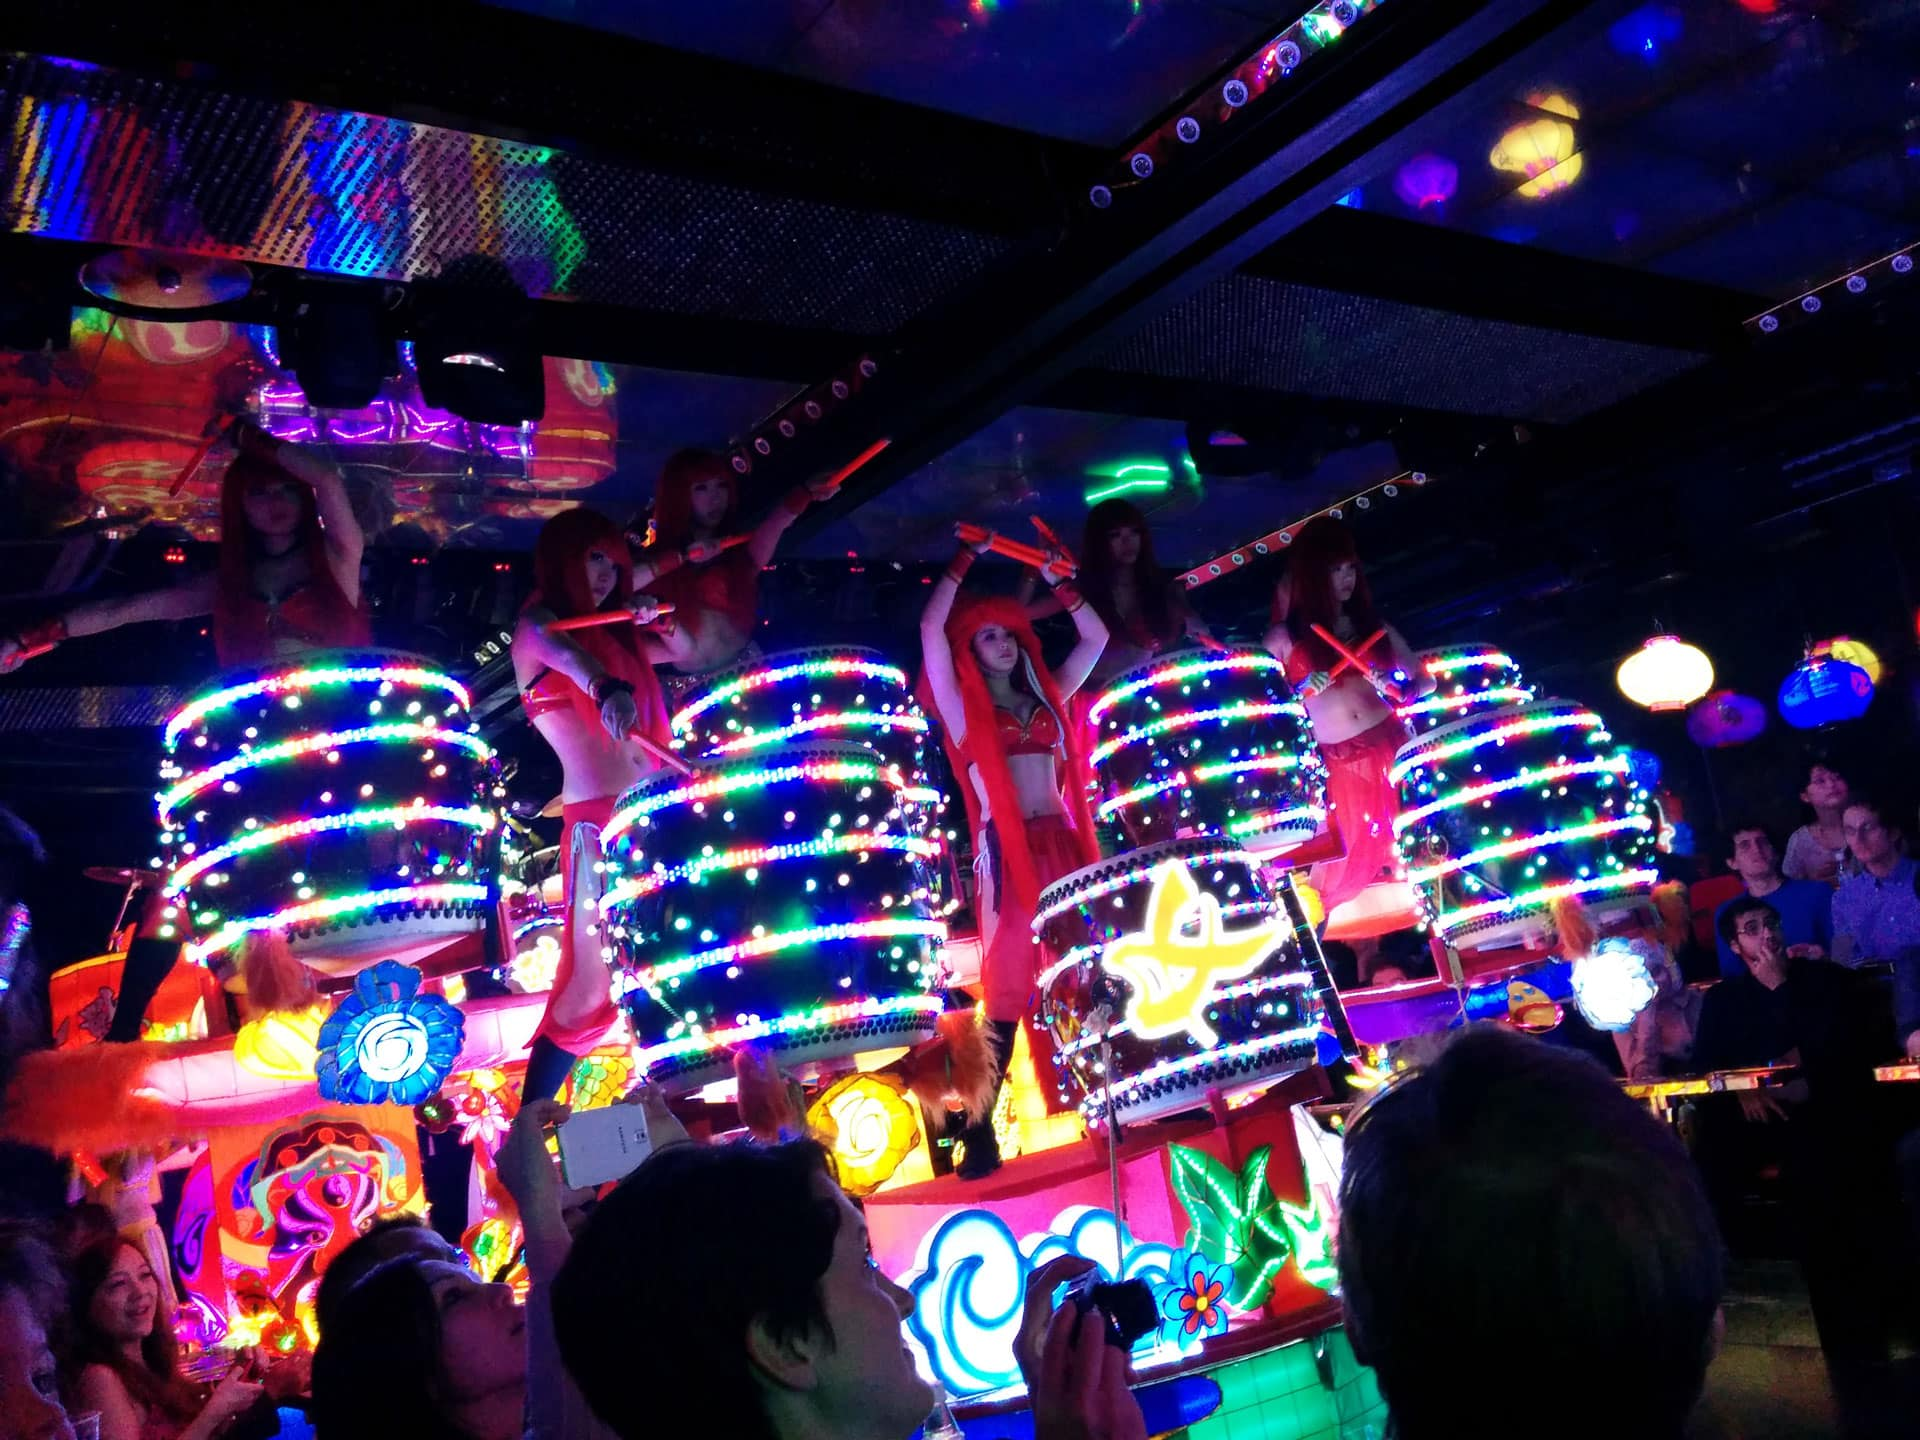 Where to find cheap Robot Restaurant Tickets